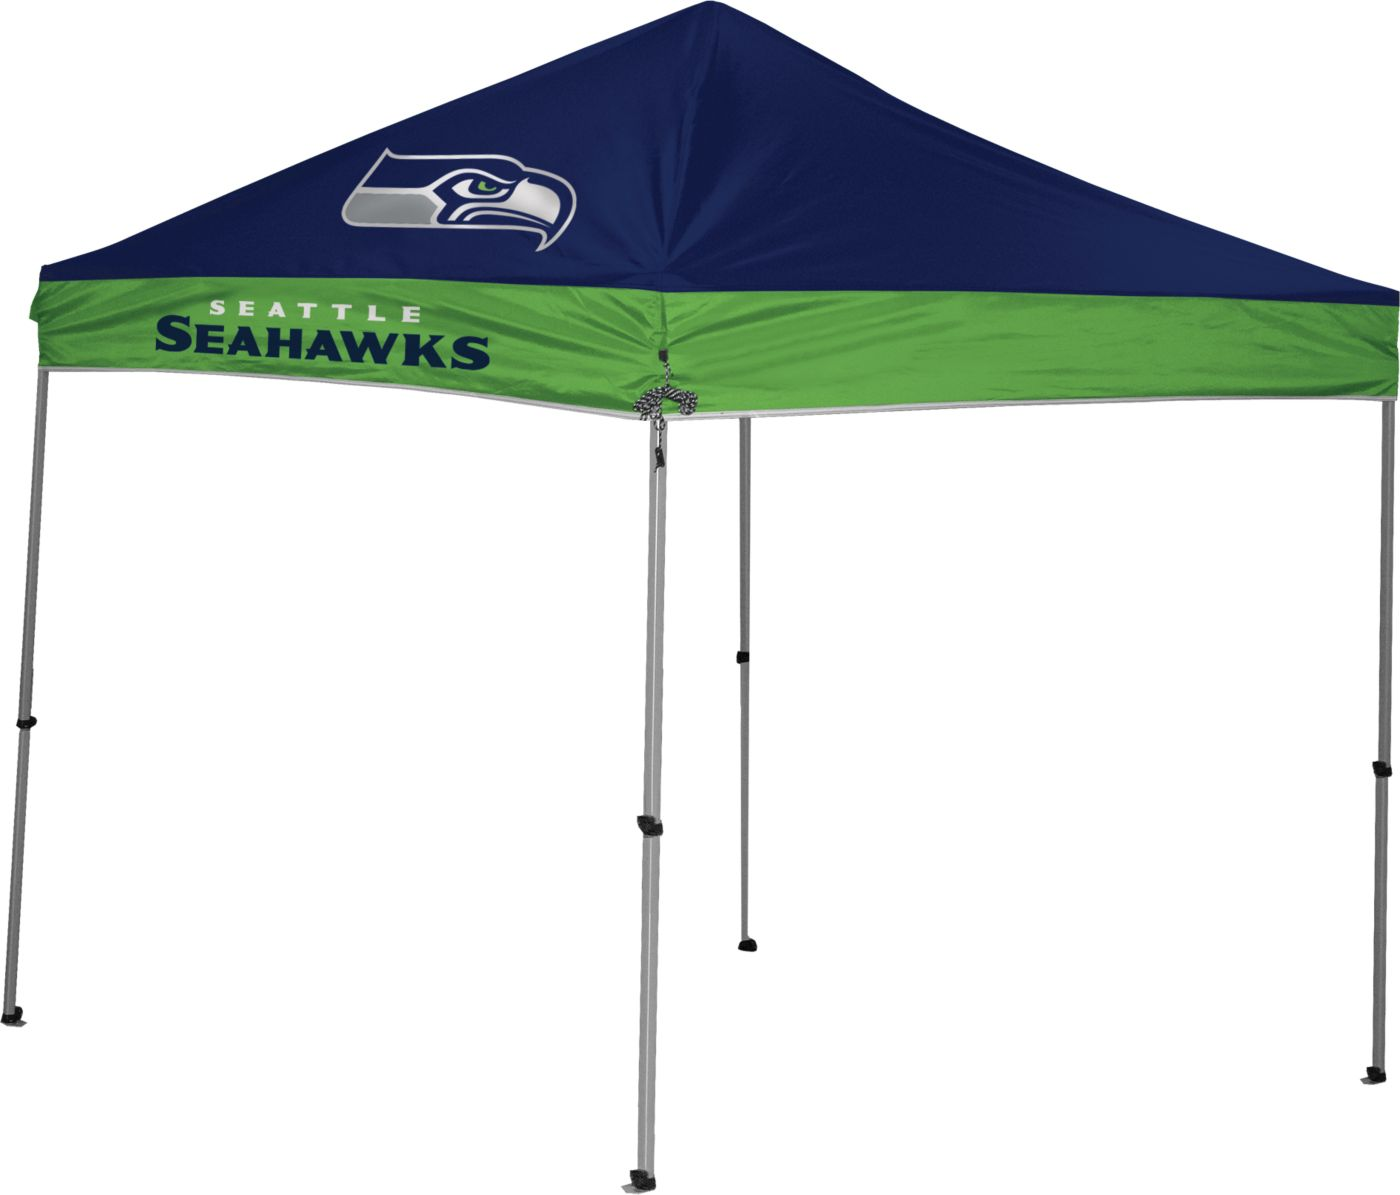 Rawlings Seattle Seahawks 9'x9' Canopy Tent